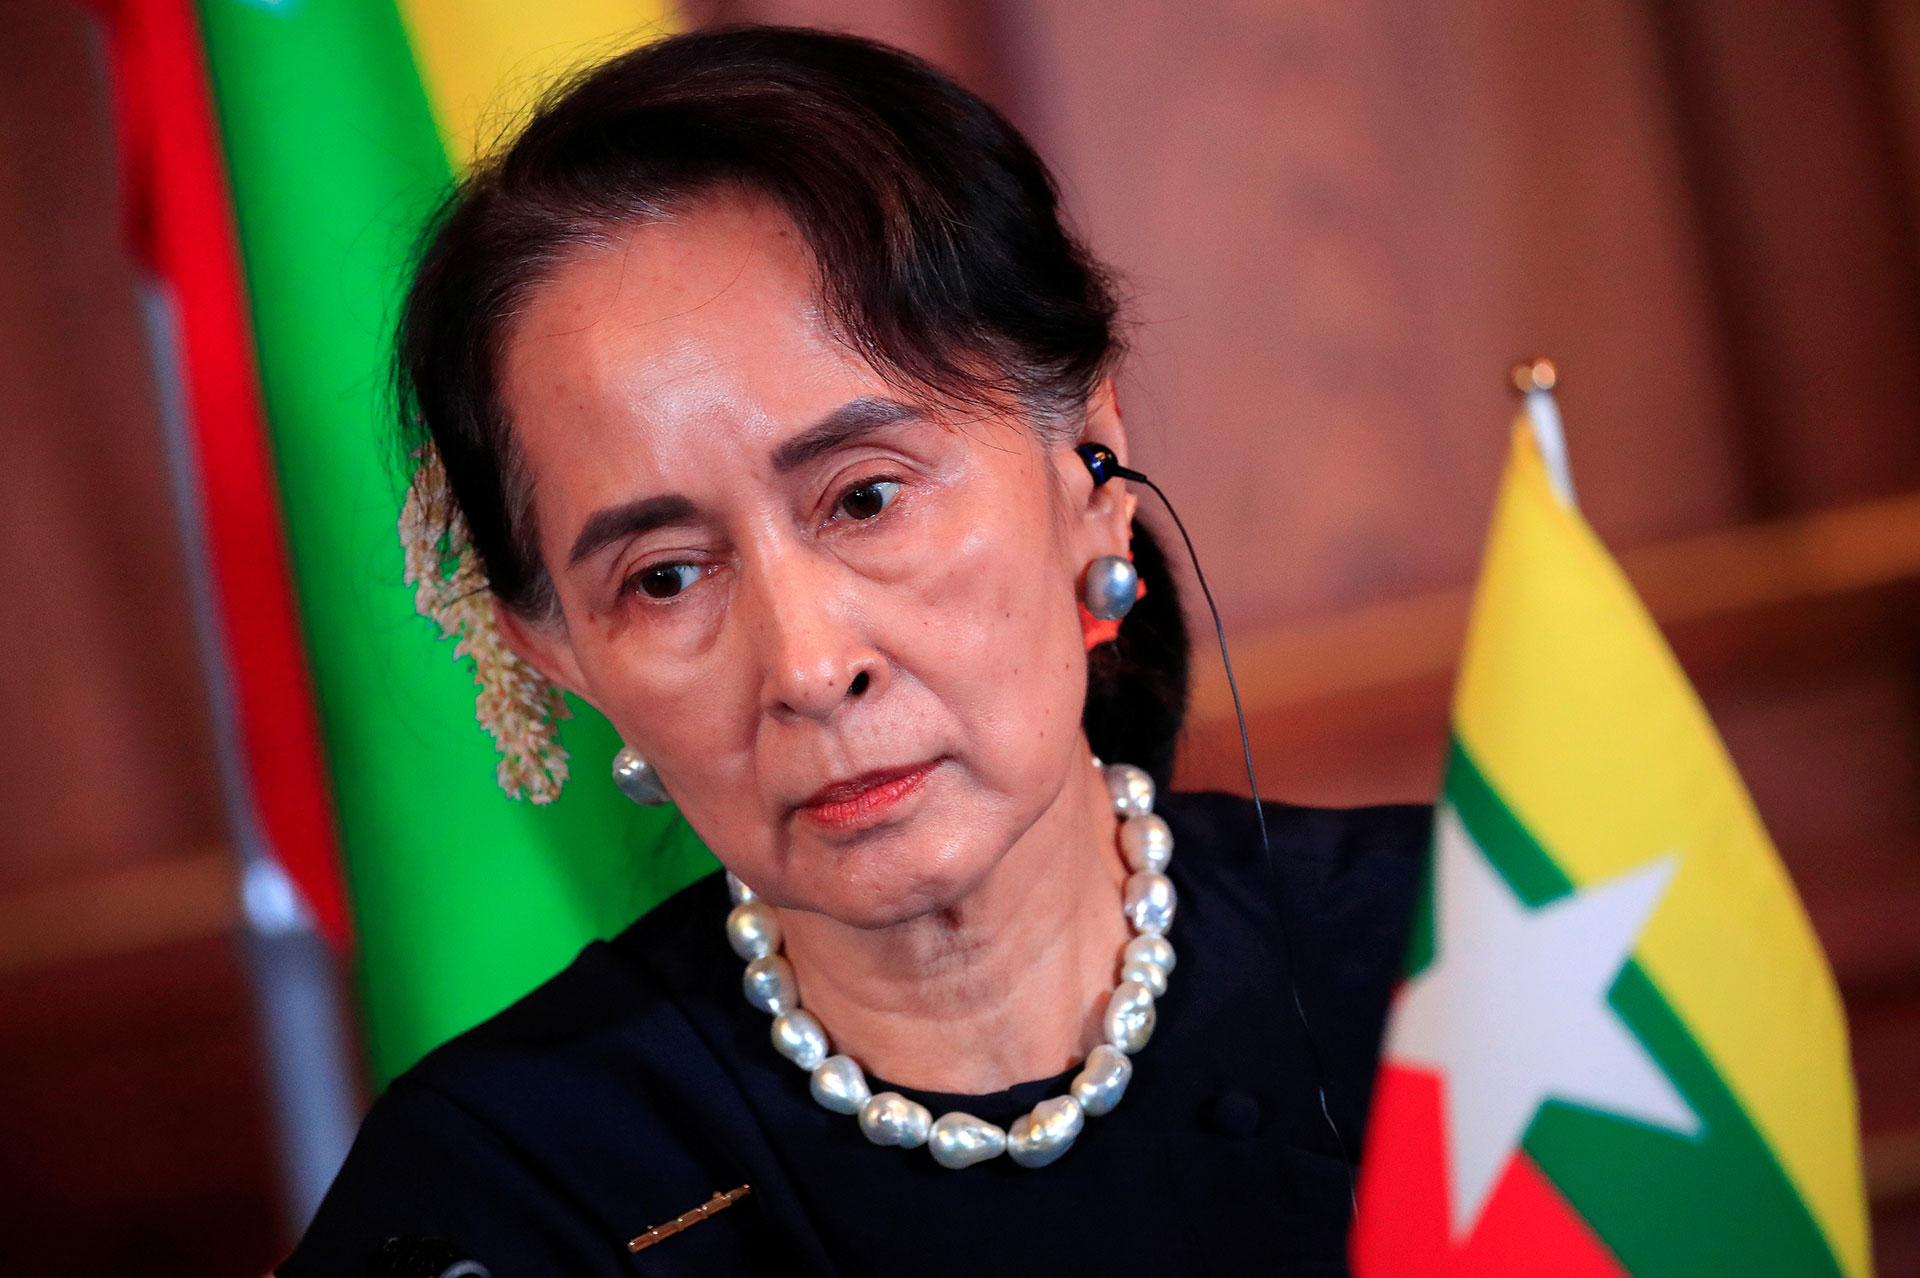 Fading Icon: Once a global hero, what happened to Aung San Suu Kyi?